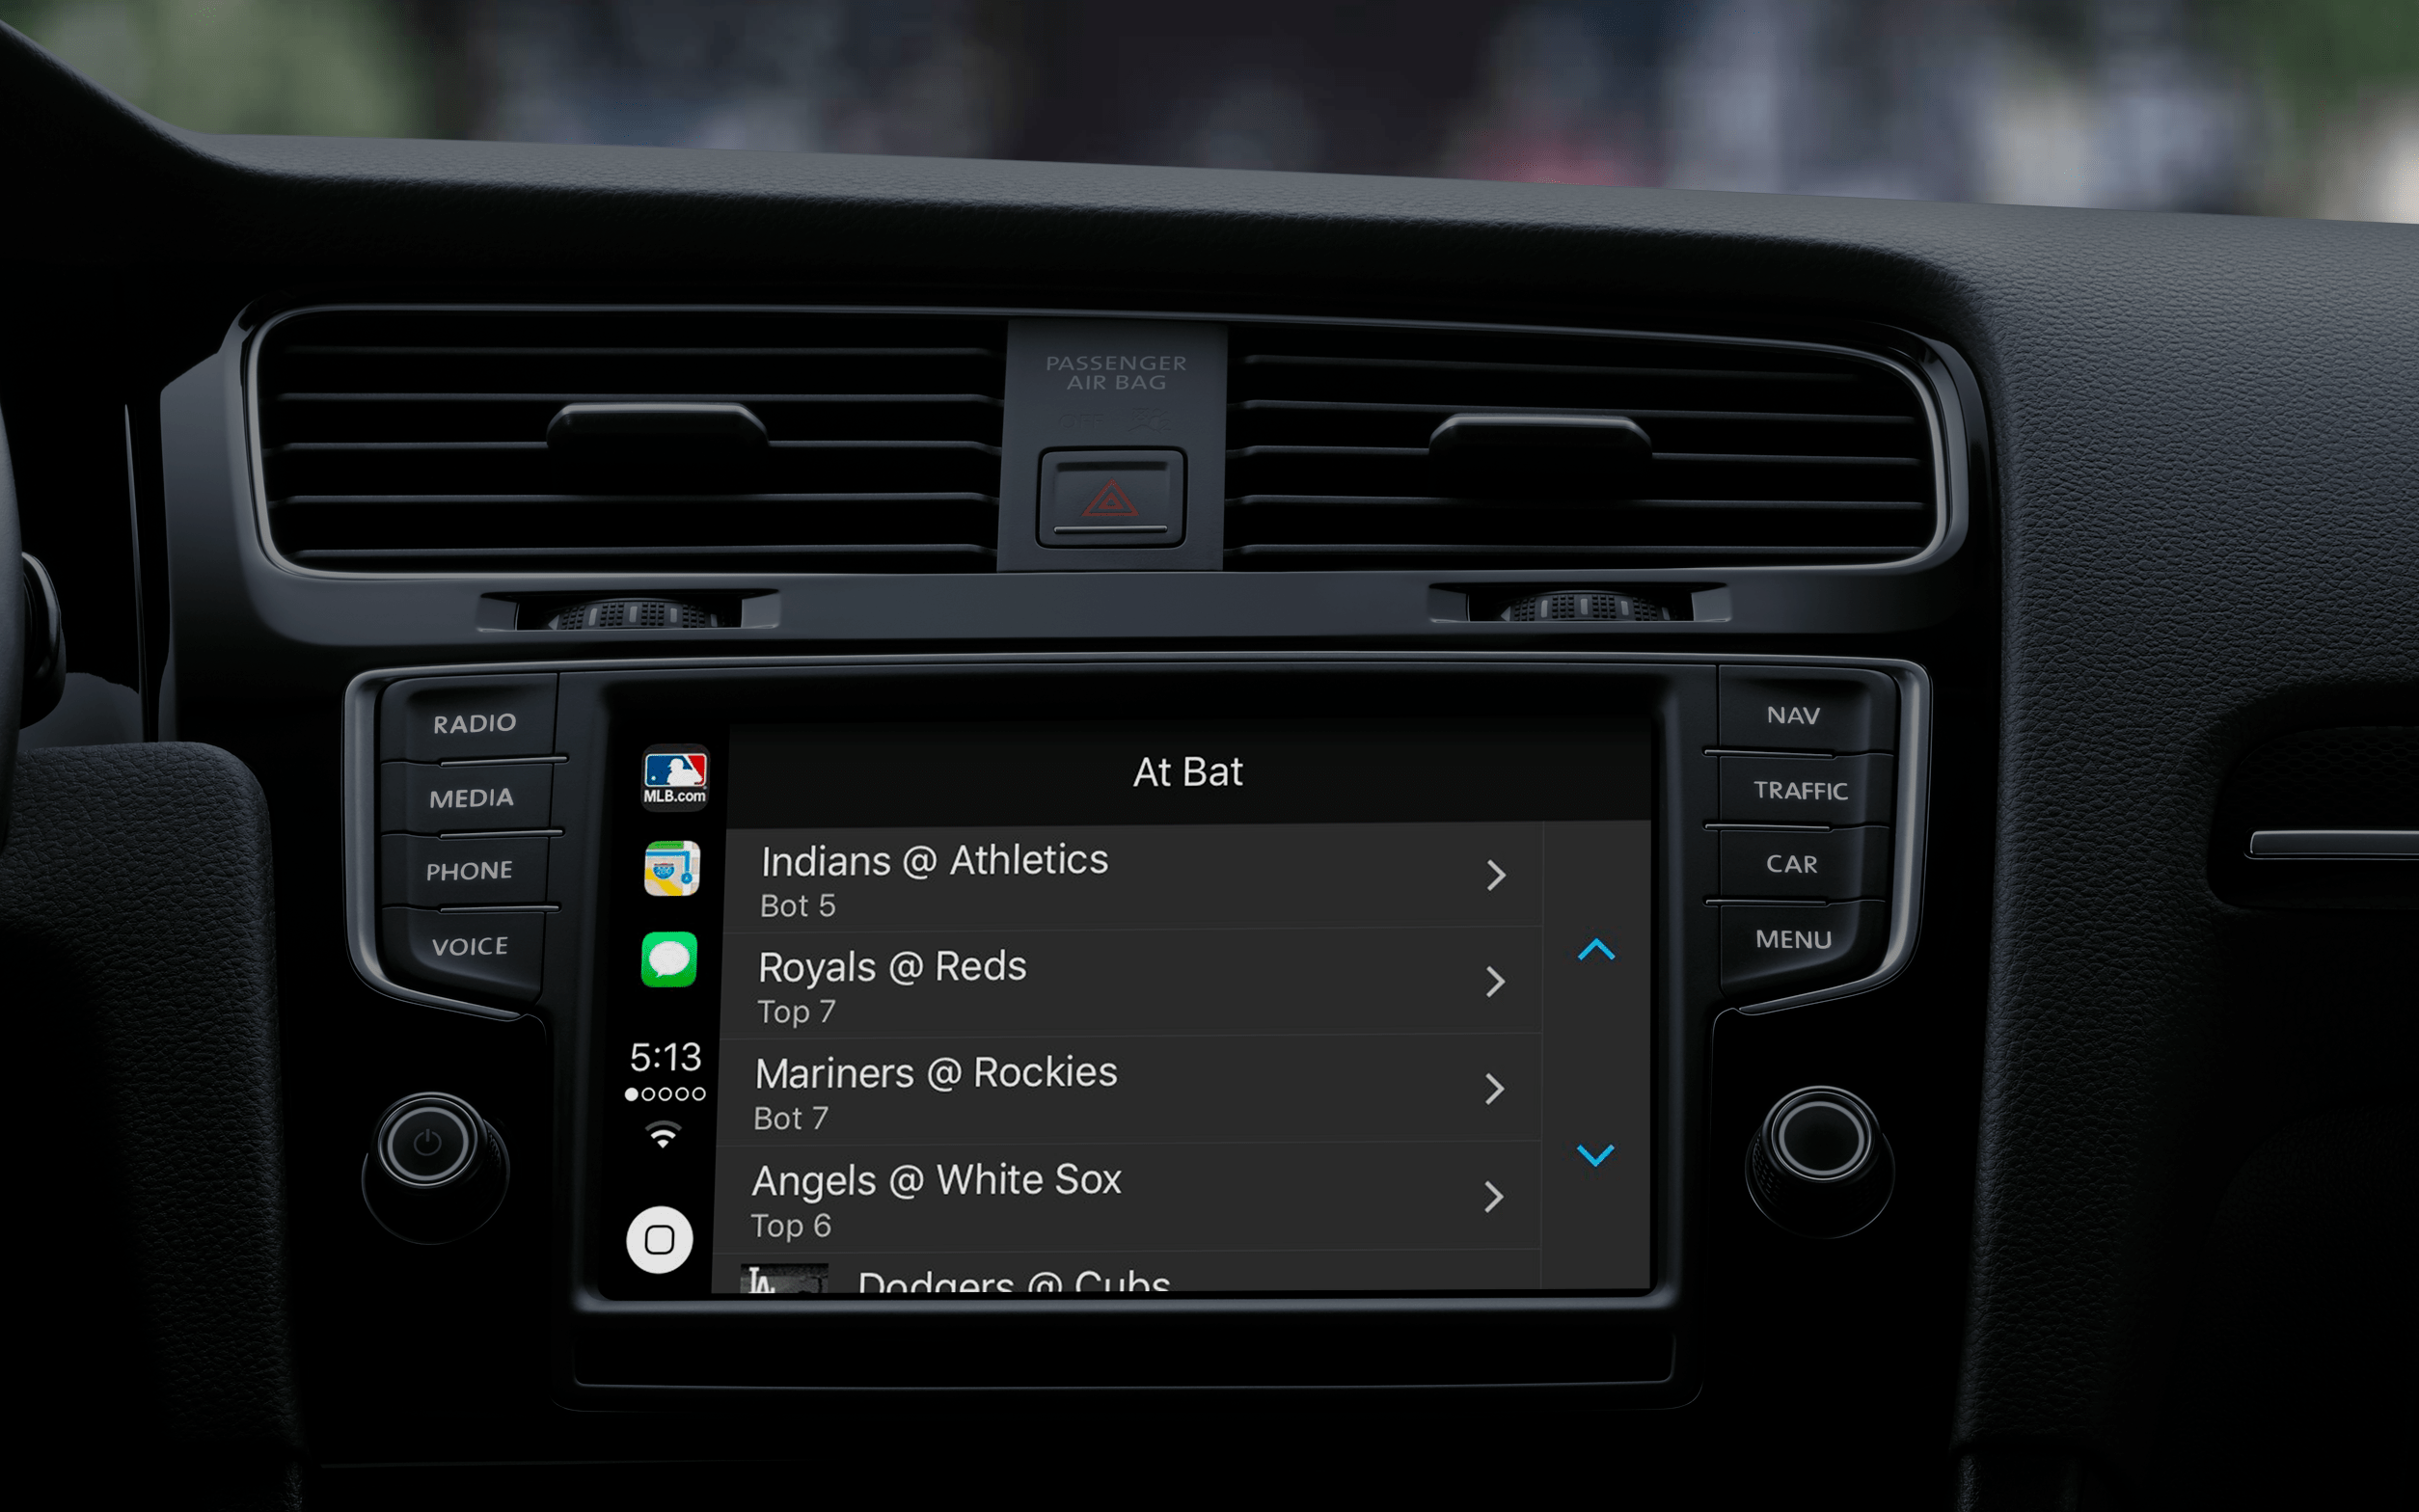 Apps supported by apple CarPlay: MLB At Bat